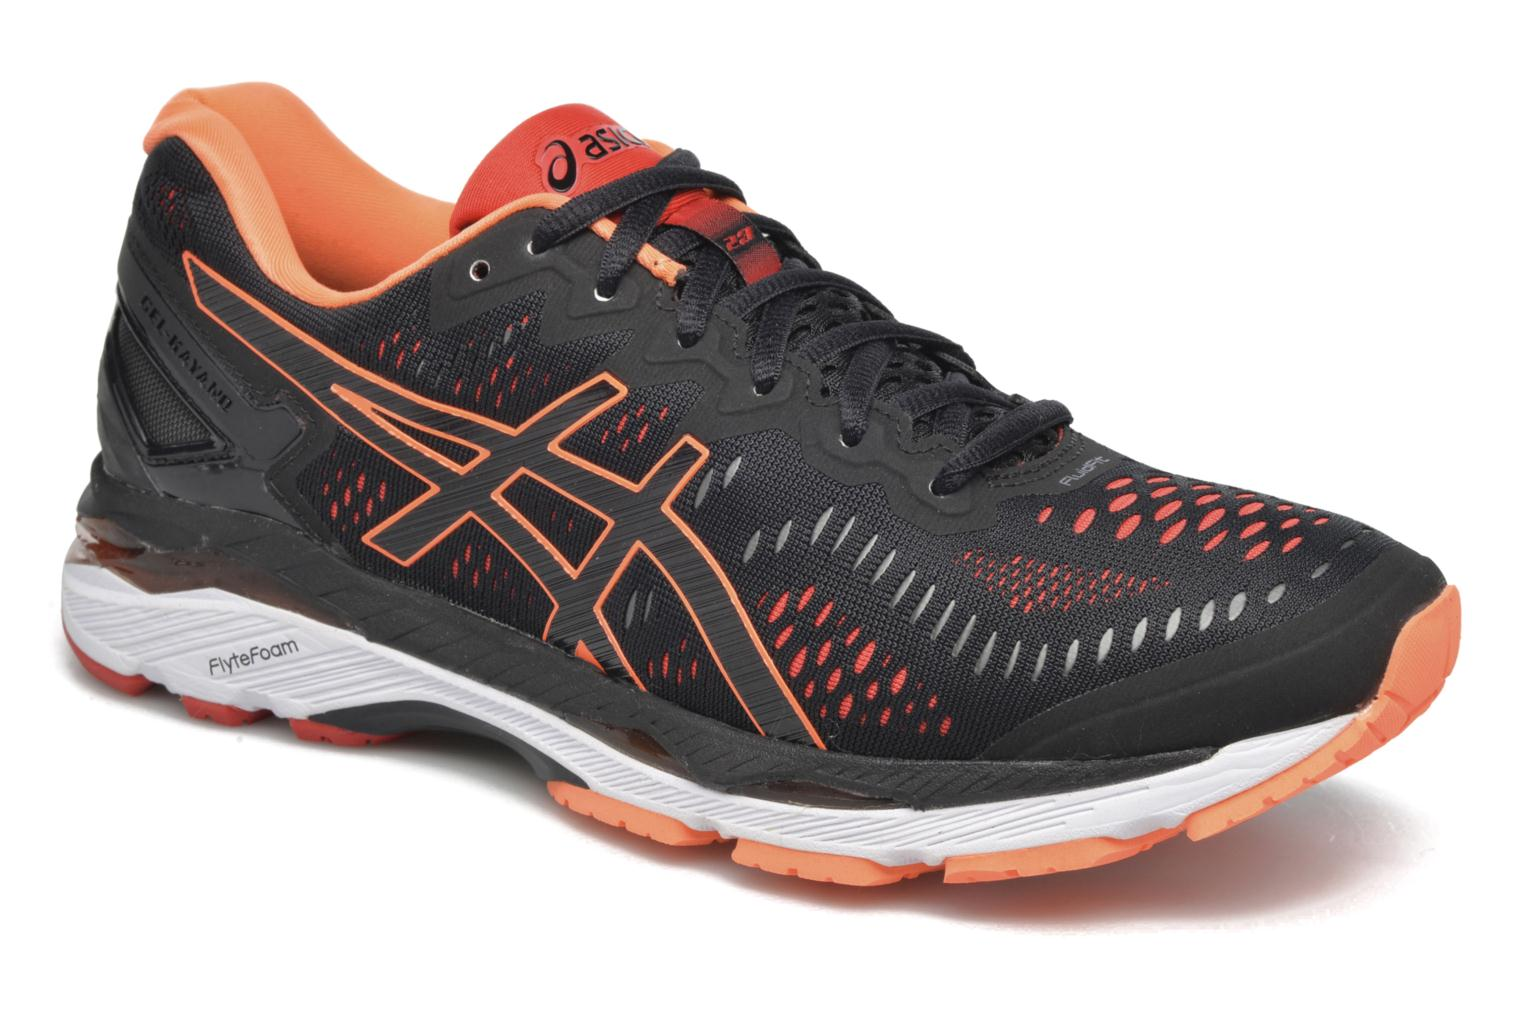 Gel-Kayano 23 Black/Hot Orange/Vermilion